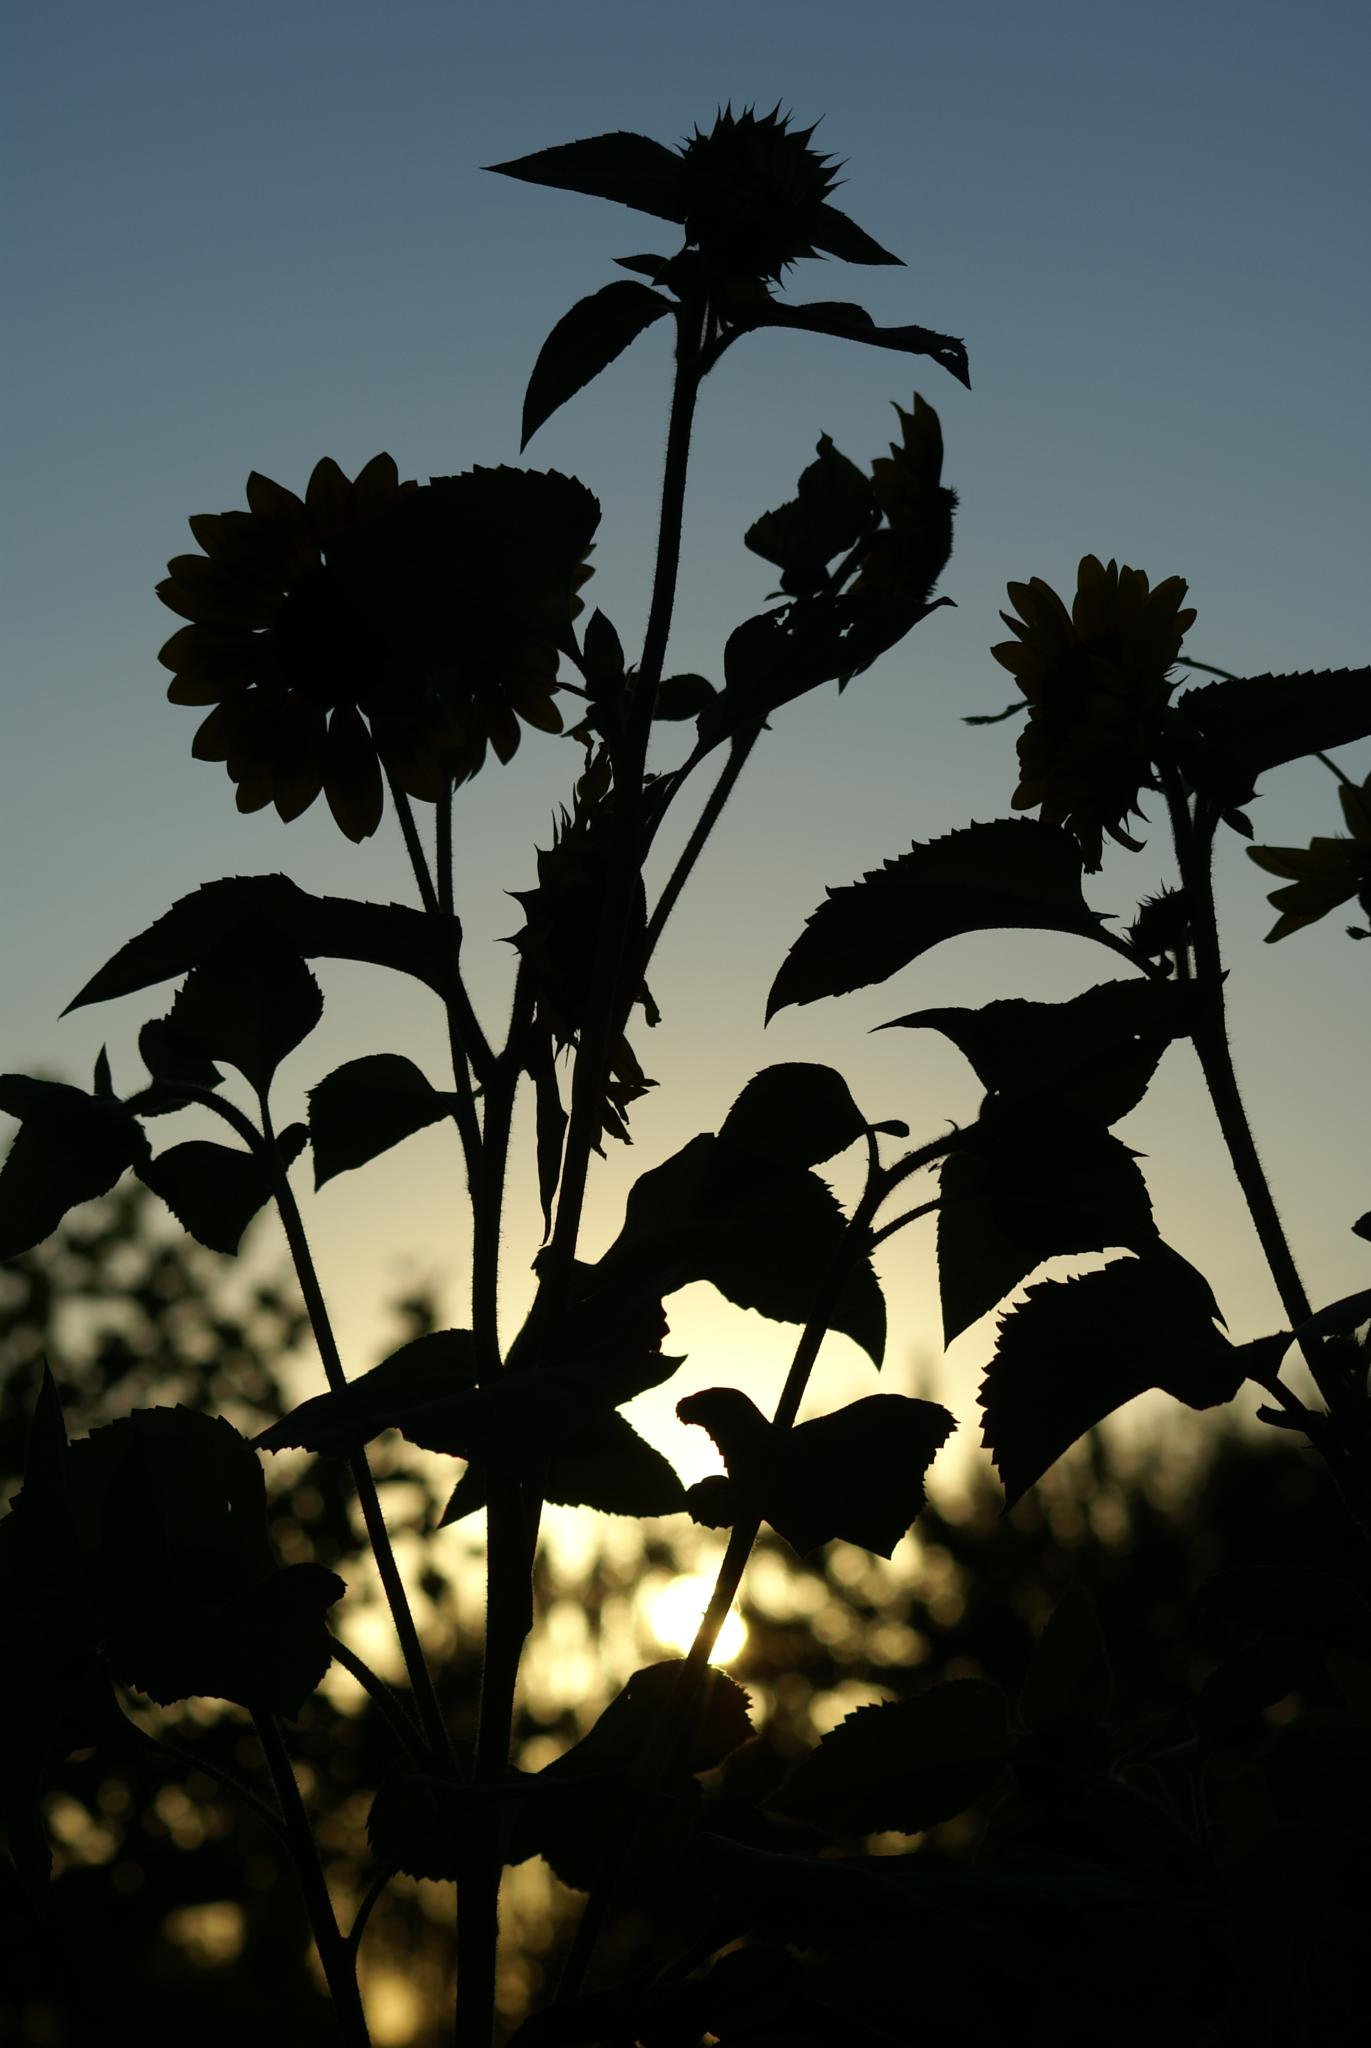 flowers at sunset by shawna.morgan.7